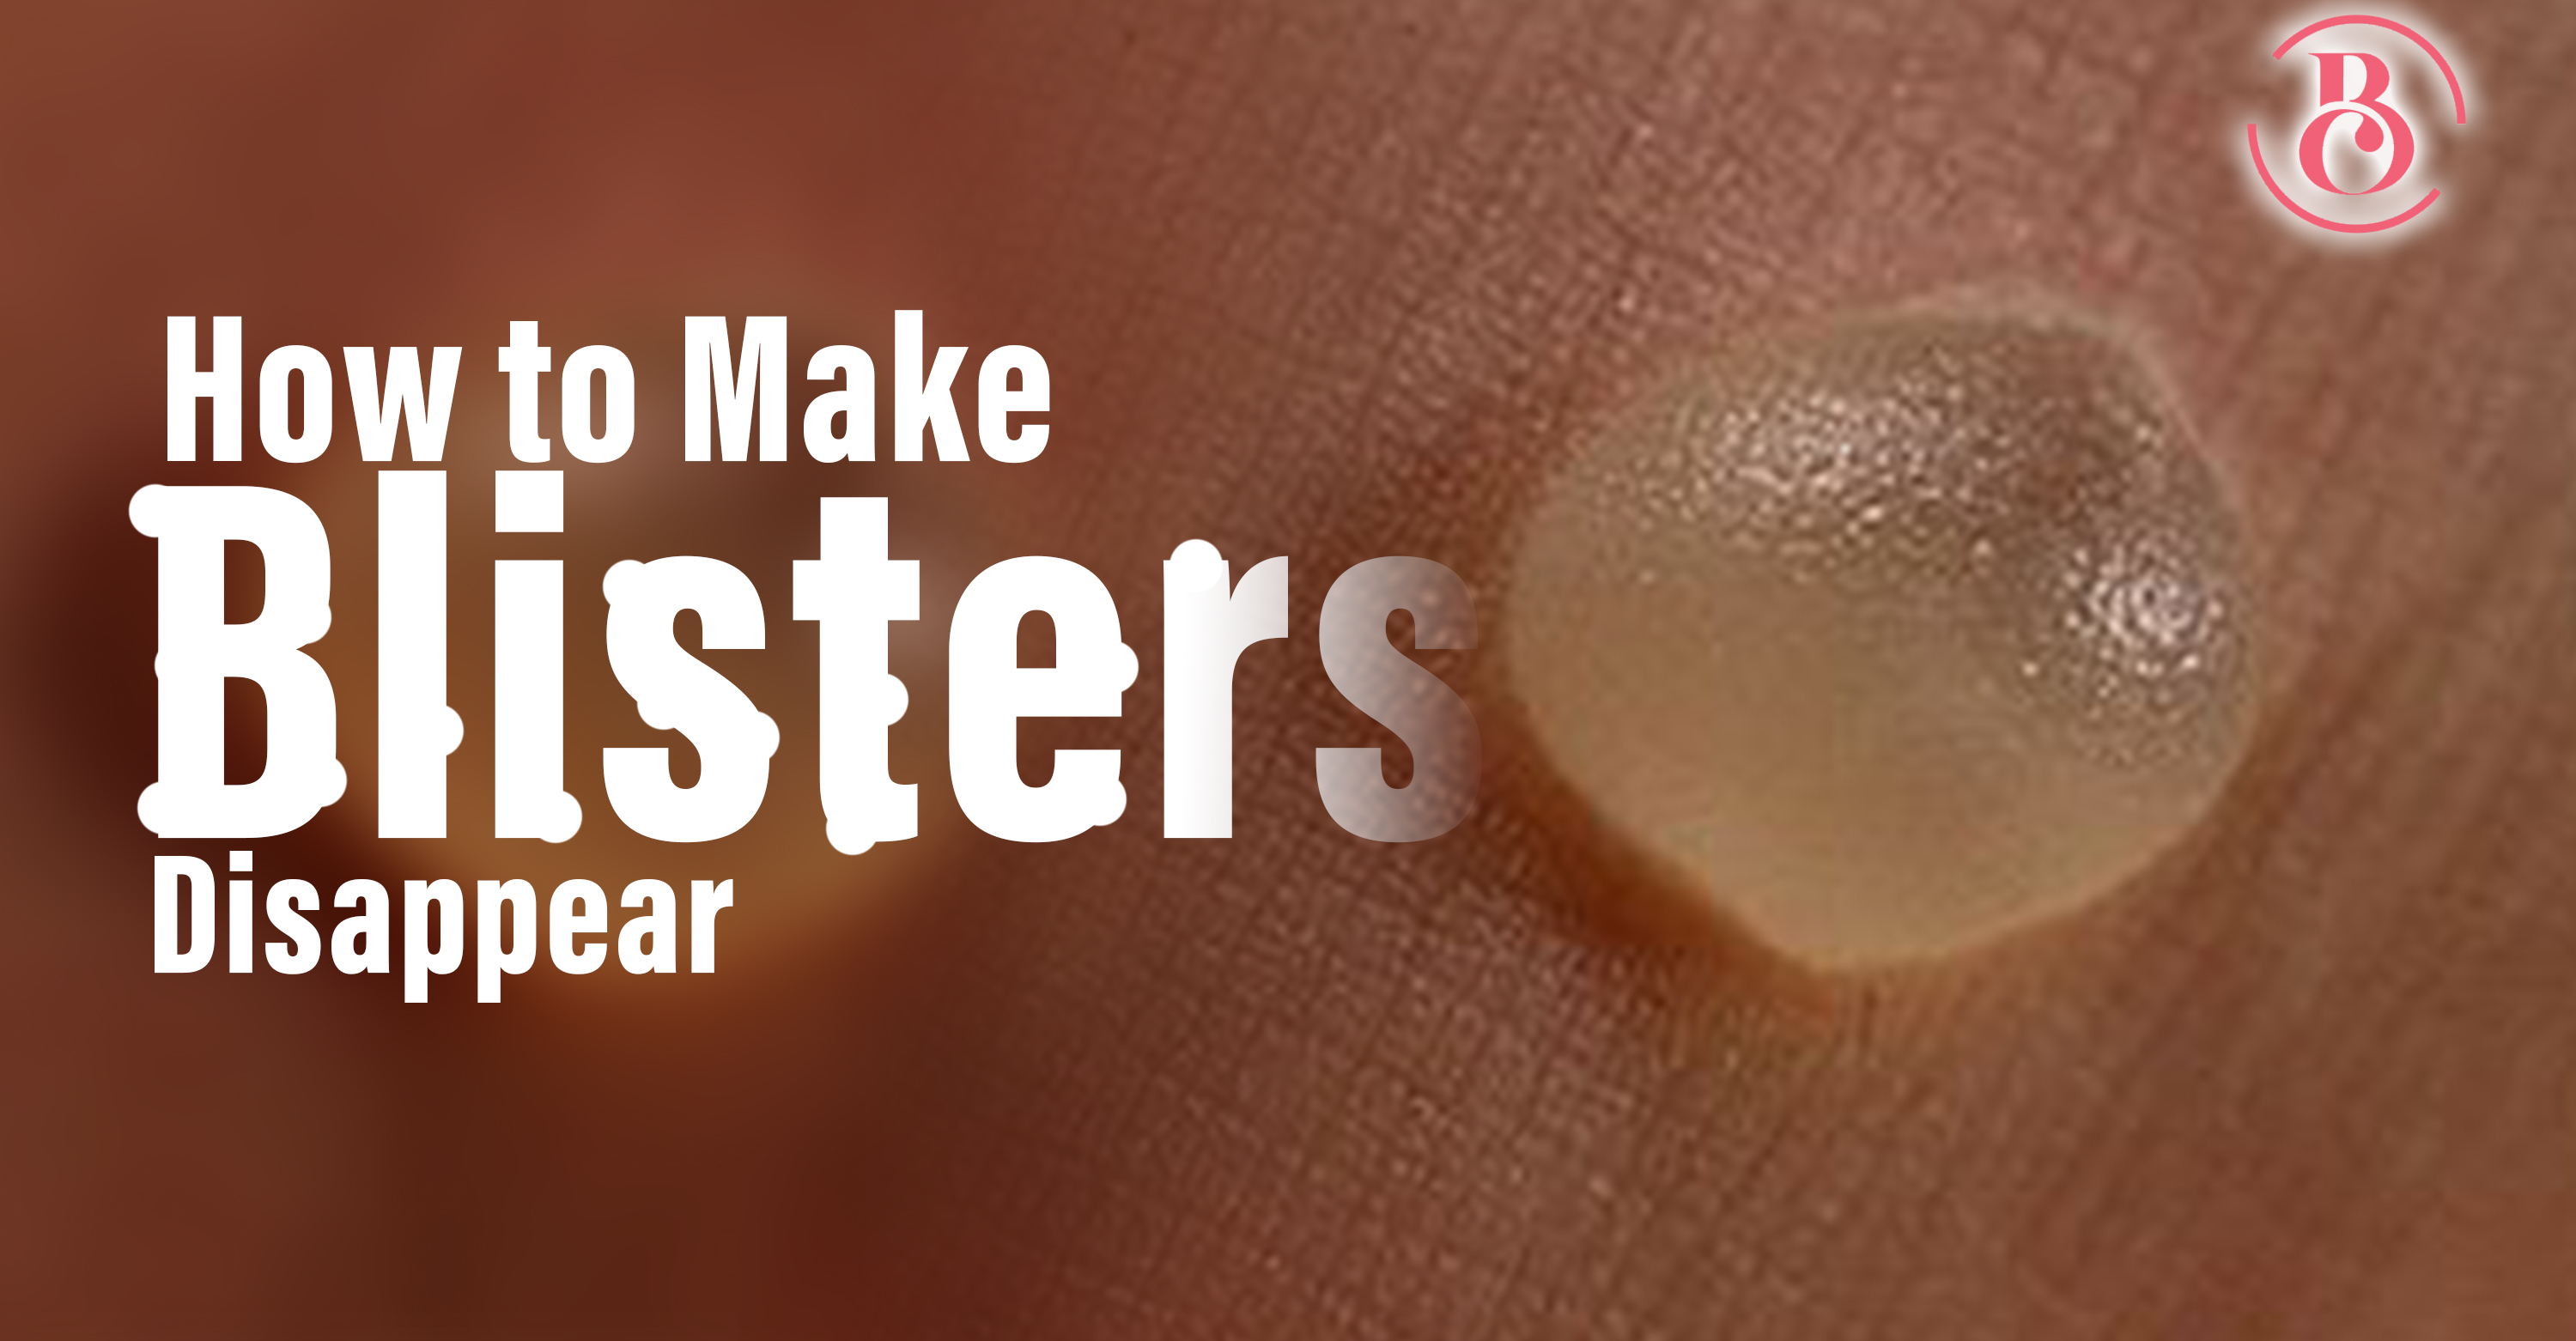 4 Sure Ways to Make Blisters Disappear